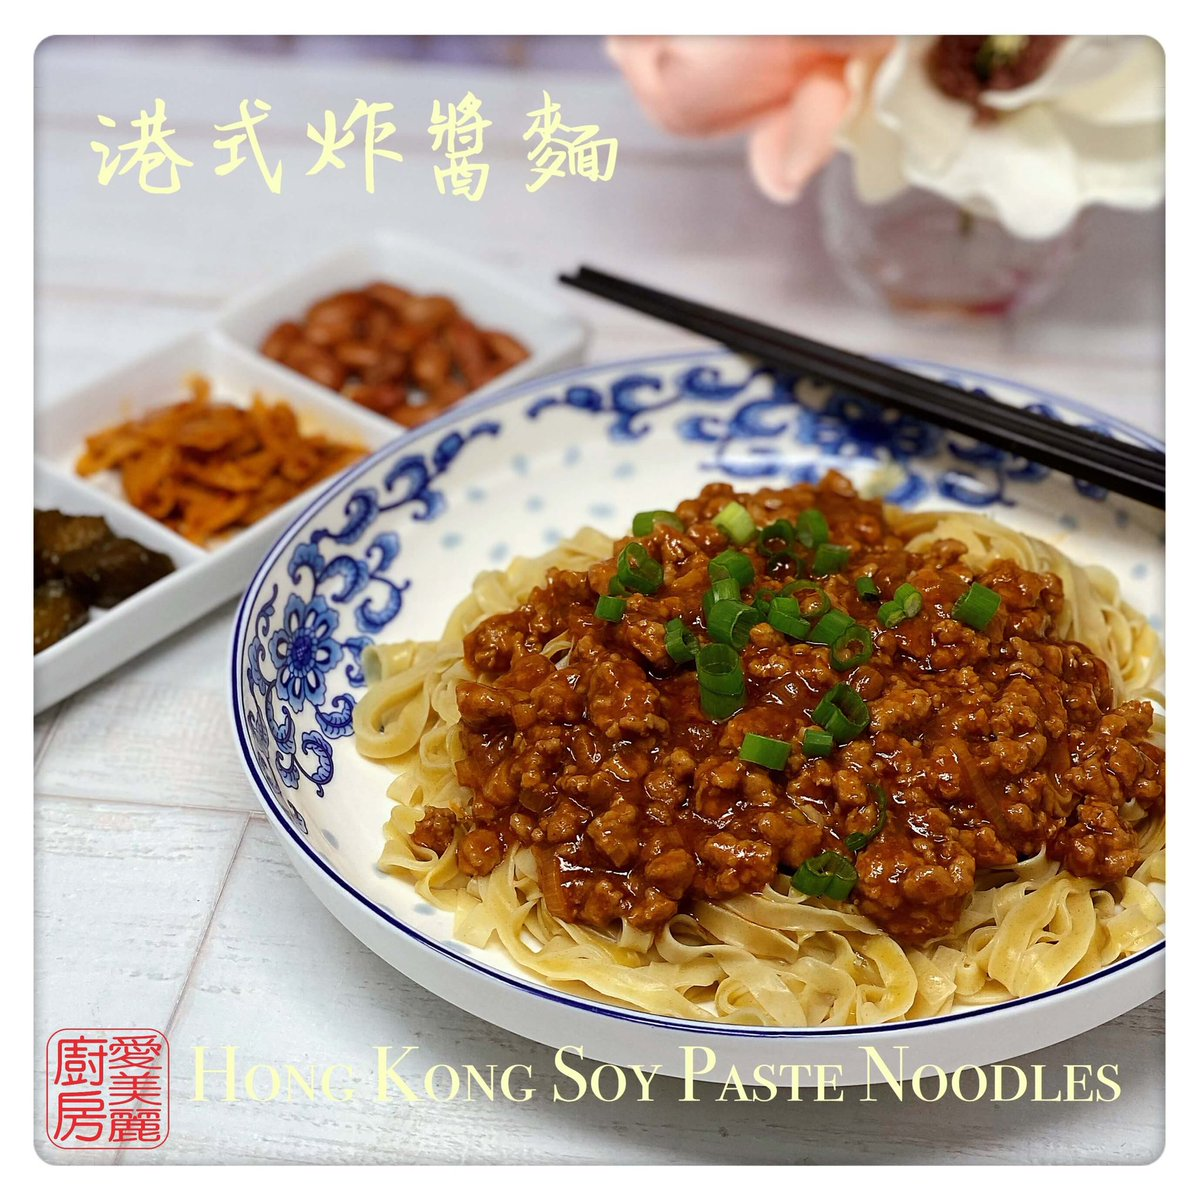 Hong Kong Soy Paste Noodles港式炸醬面 posted! It's quick, easy & most importantly, delicious! 😋🥢🥡    #auntieemilyskitchen #homemade #homecooking #homecooked  #foodie #foodblog #yummy #goodeats #nomnom #hungry #chinesefood #food #yum #delicious #noodles